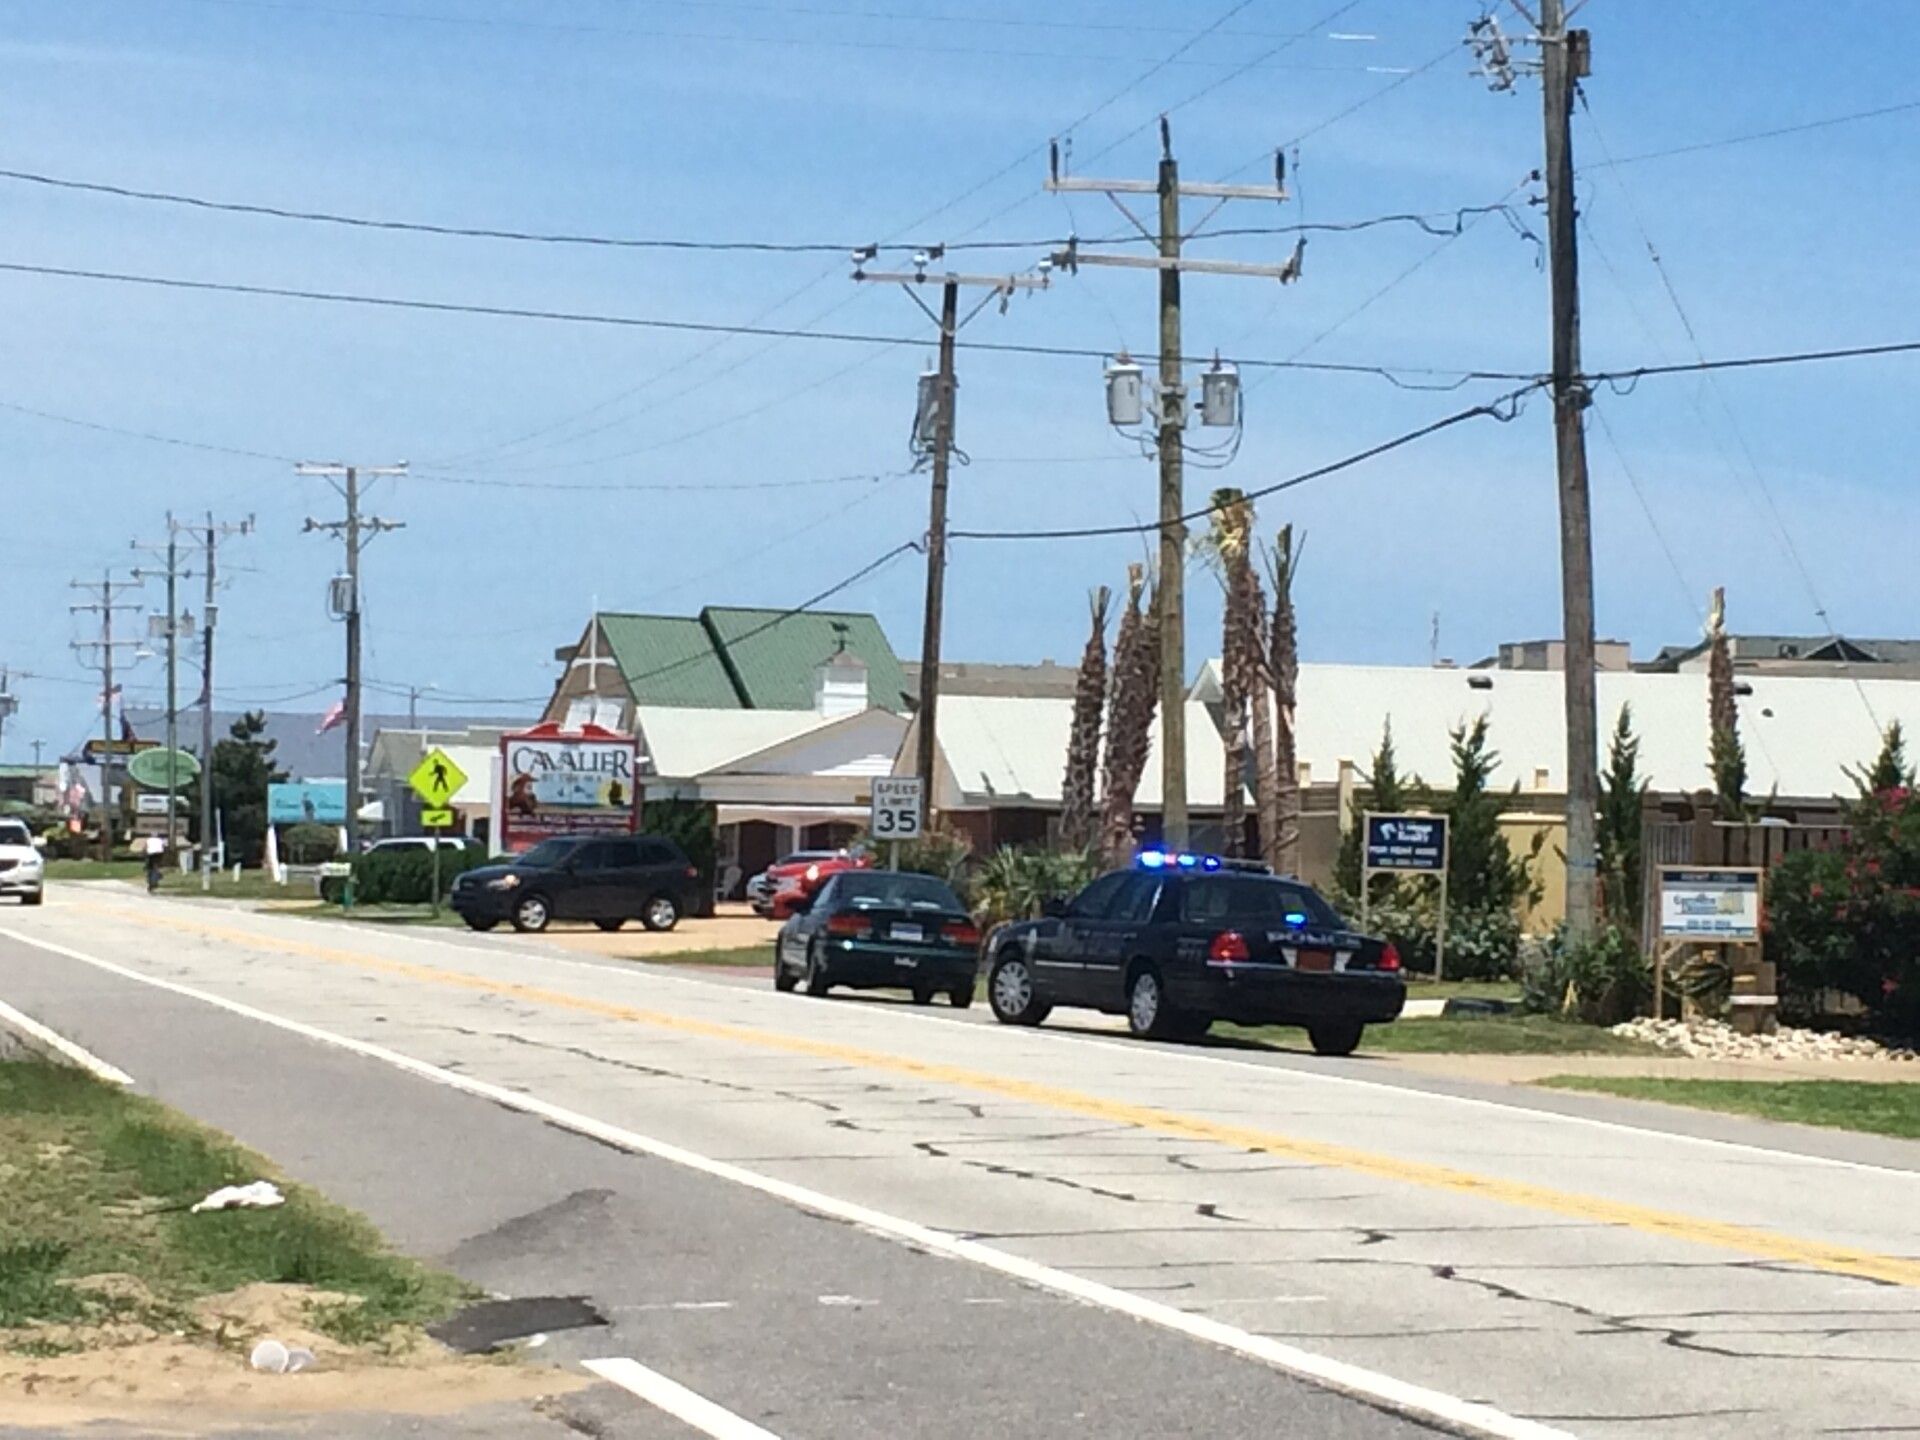 Photos: Dozens of drivers pulled over in the Outer Banks for violating pedestrianlaw